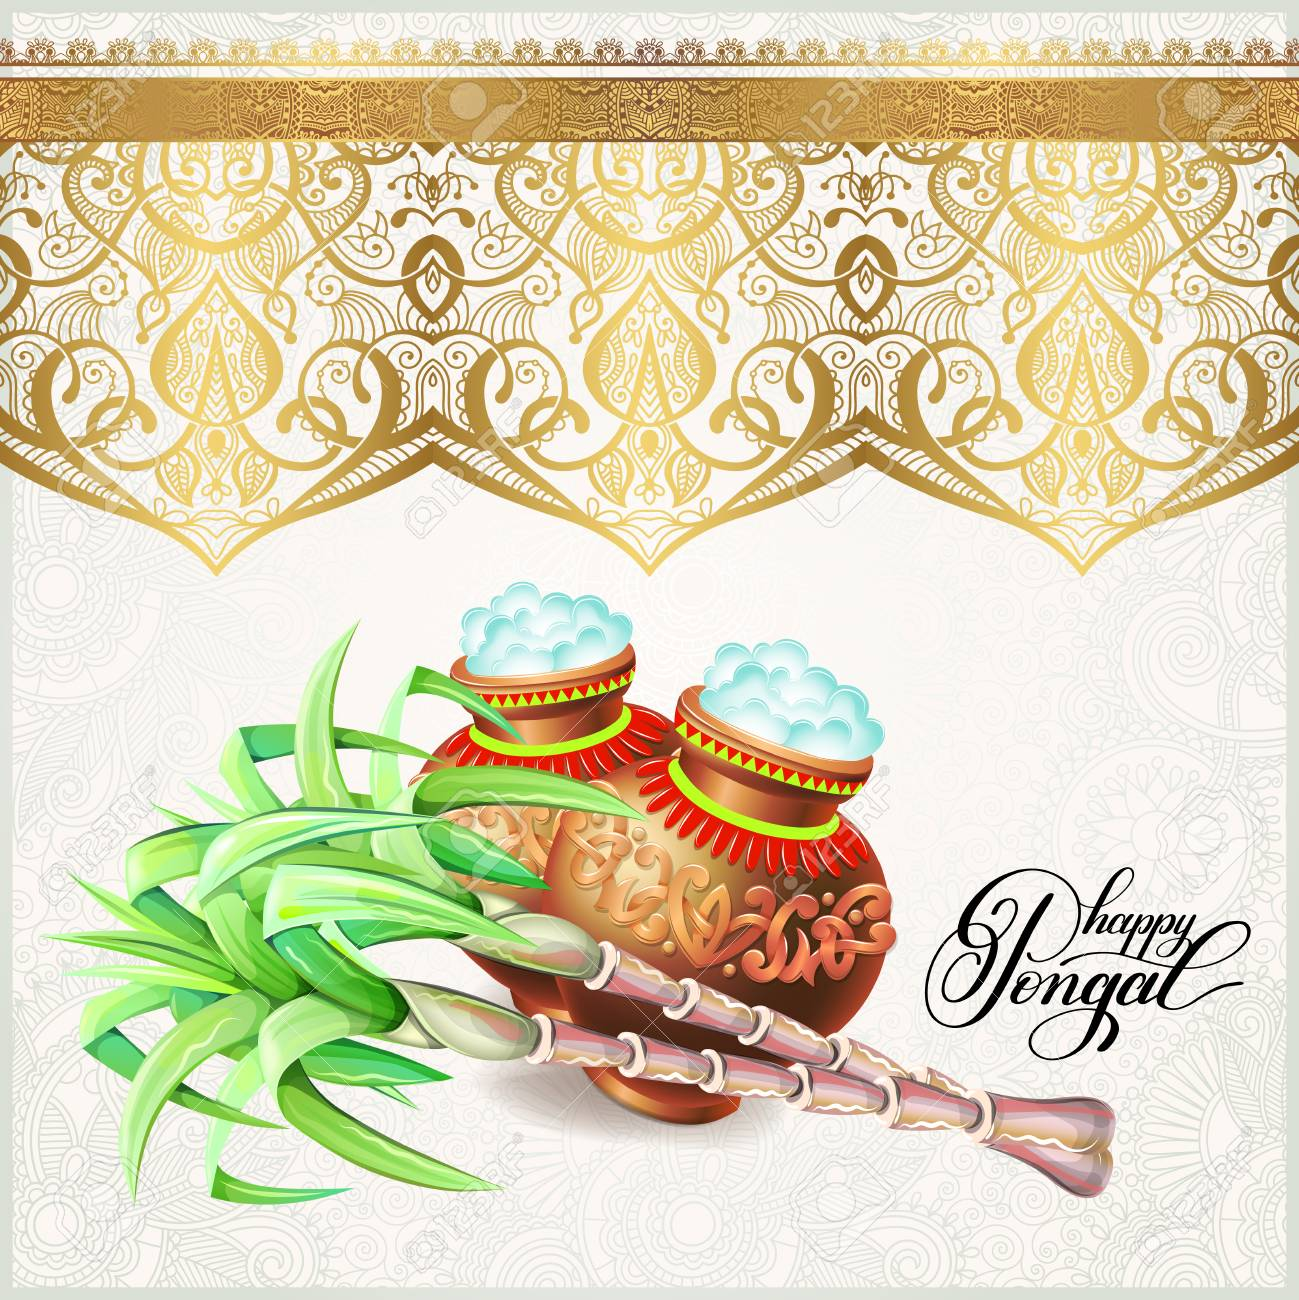 Happy pongal greeting card to south indian harvest festival happy pongal greeting card to south indian harvest festival vector illustration stock vector 93557094 m4hsunfo